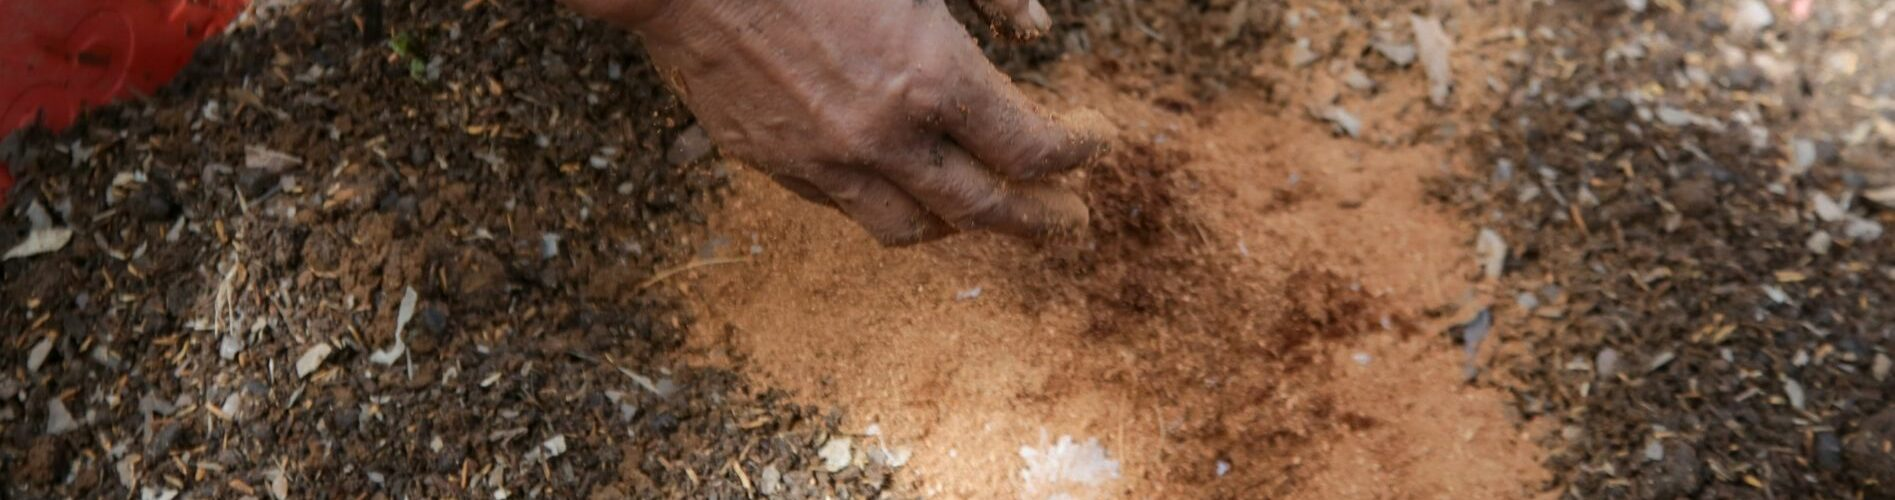 Hands over soil mixing in soil amendments for better soil quality